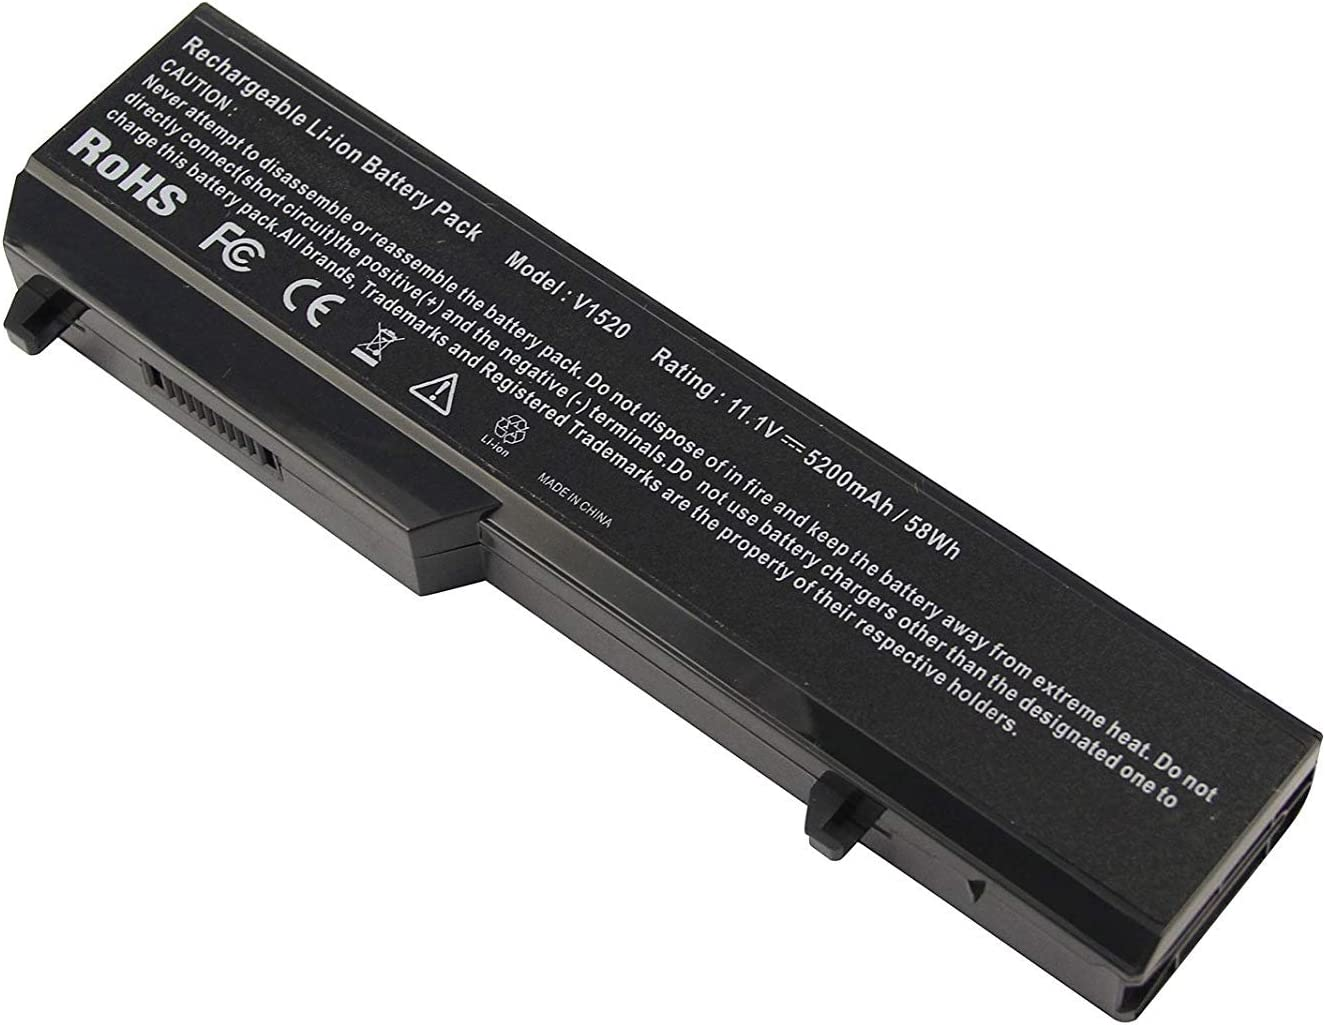 Battery for Dell Vostro 1320 1310 1510 1520 2510 PP36s PP36l Series, Fits P/n K738h T112c T114c T116c U661h N958 312-0725 312-0922 N956C 5200 mAh 58 WH 11.1V 6 Cell